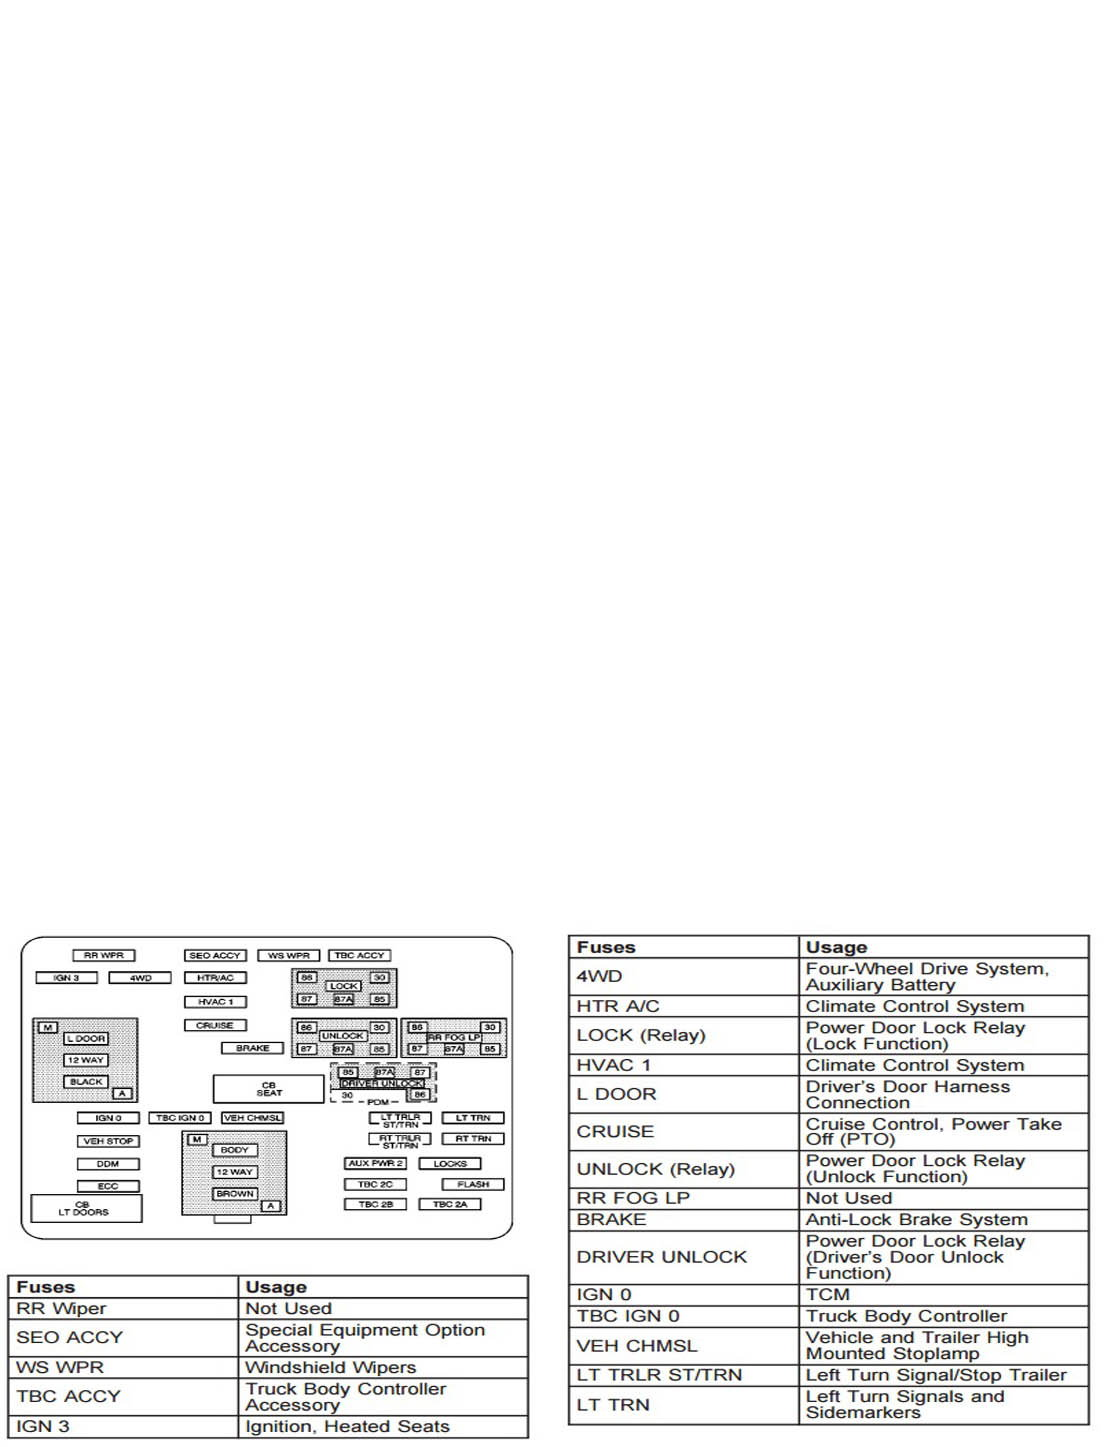 Figure 11. Instrument panel fuse box diagram and application.